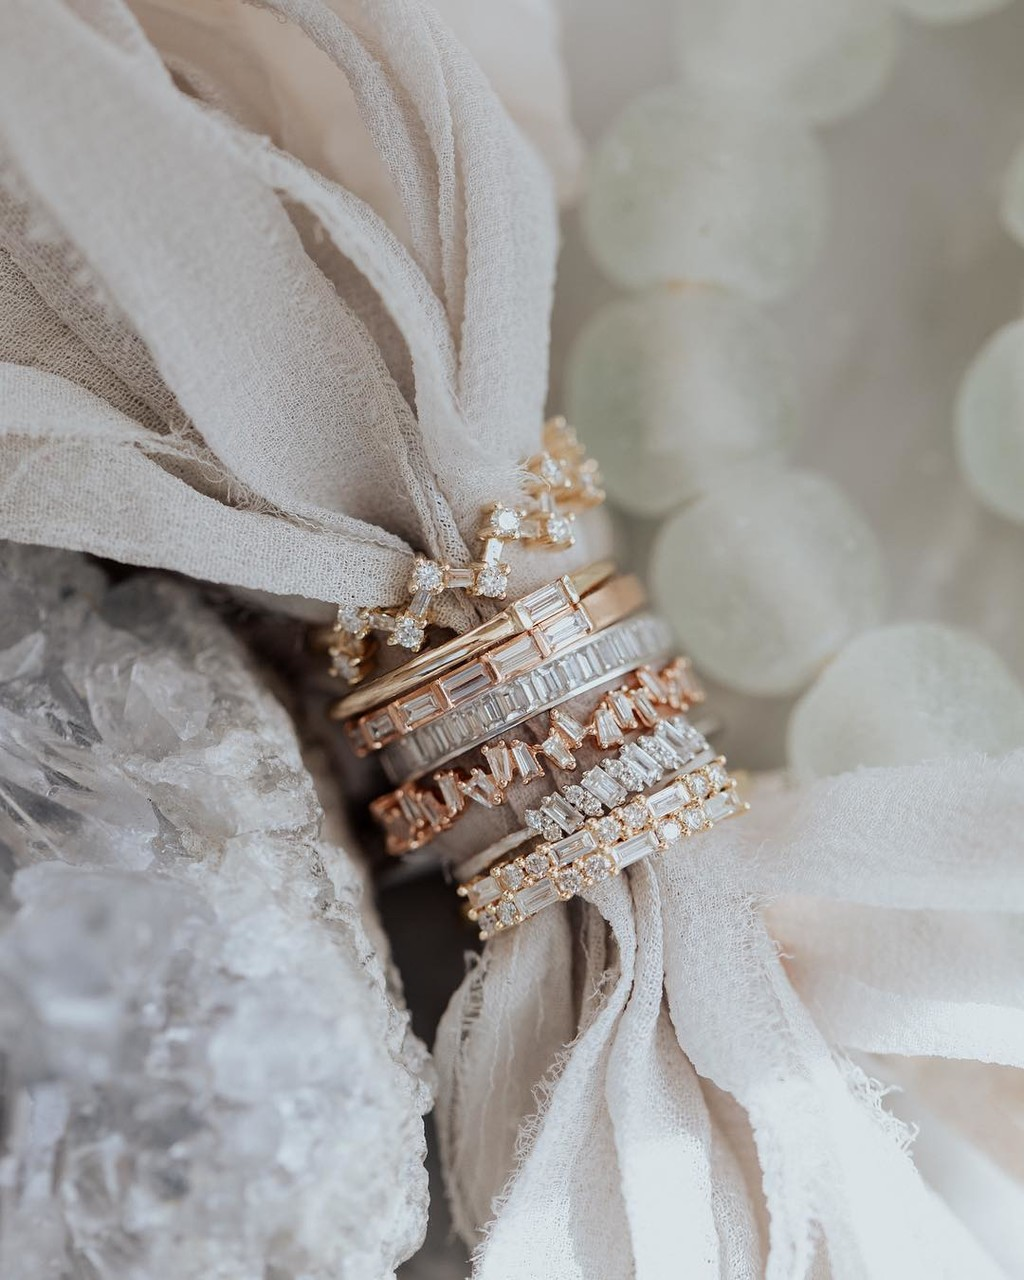 Oh baby! Baguette bands are stealing our hearts & we are totally ok with it. ✨